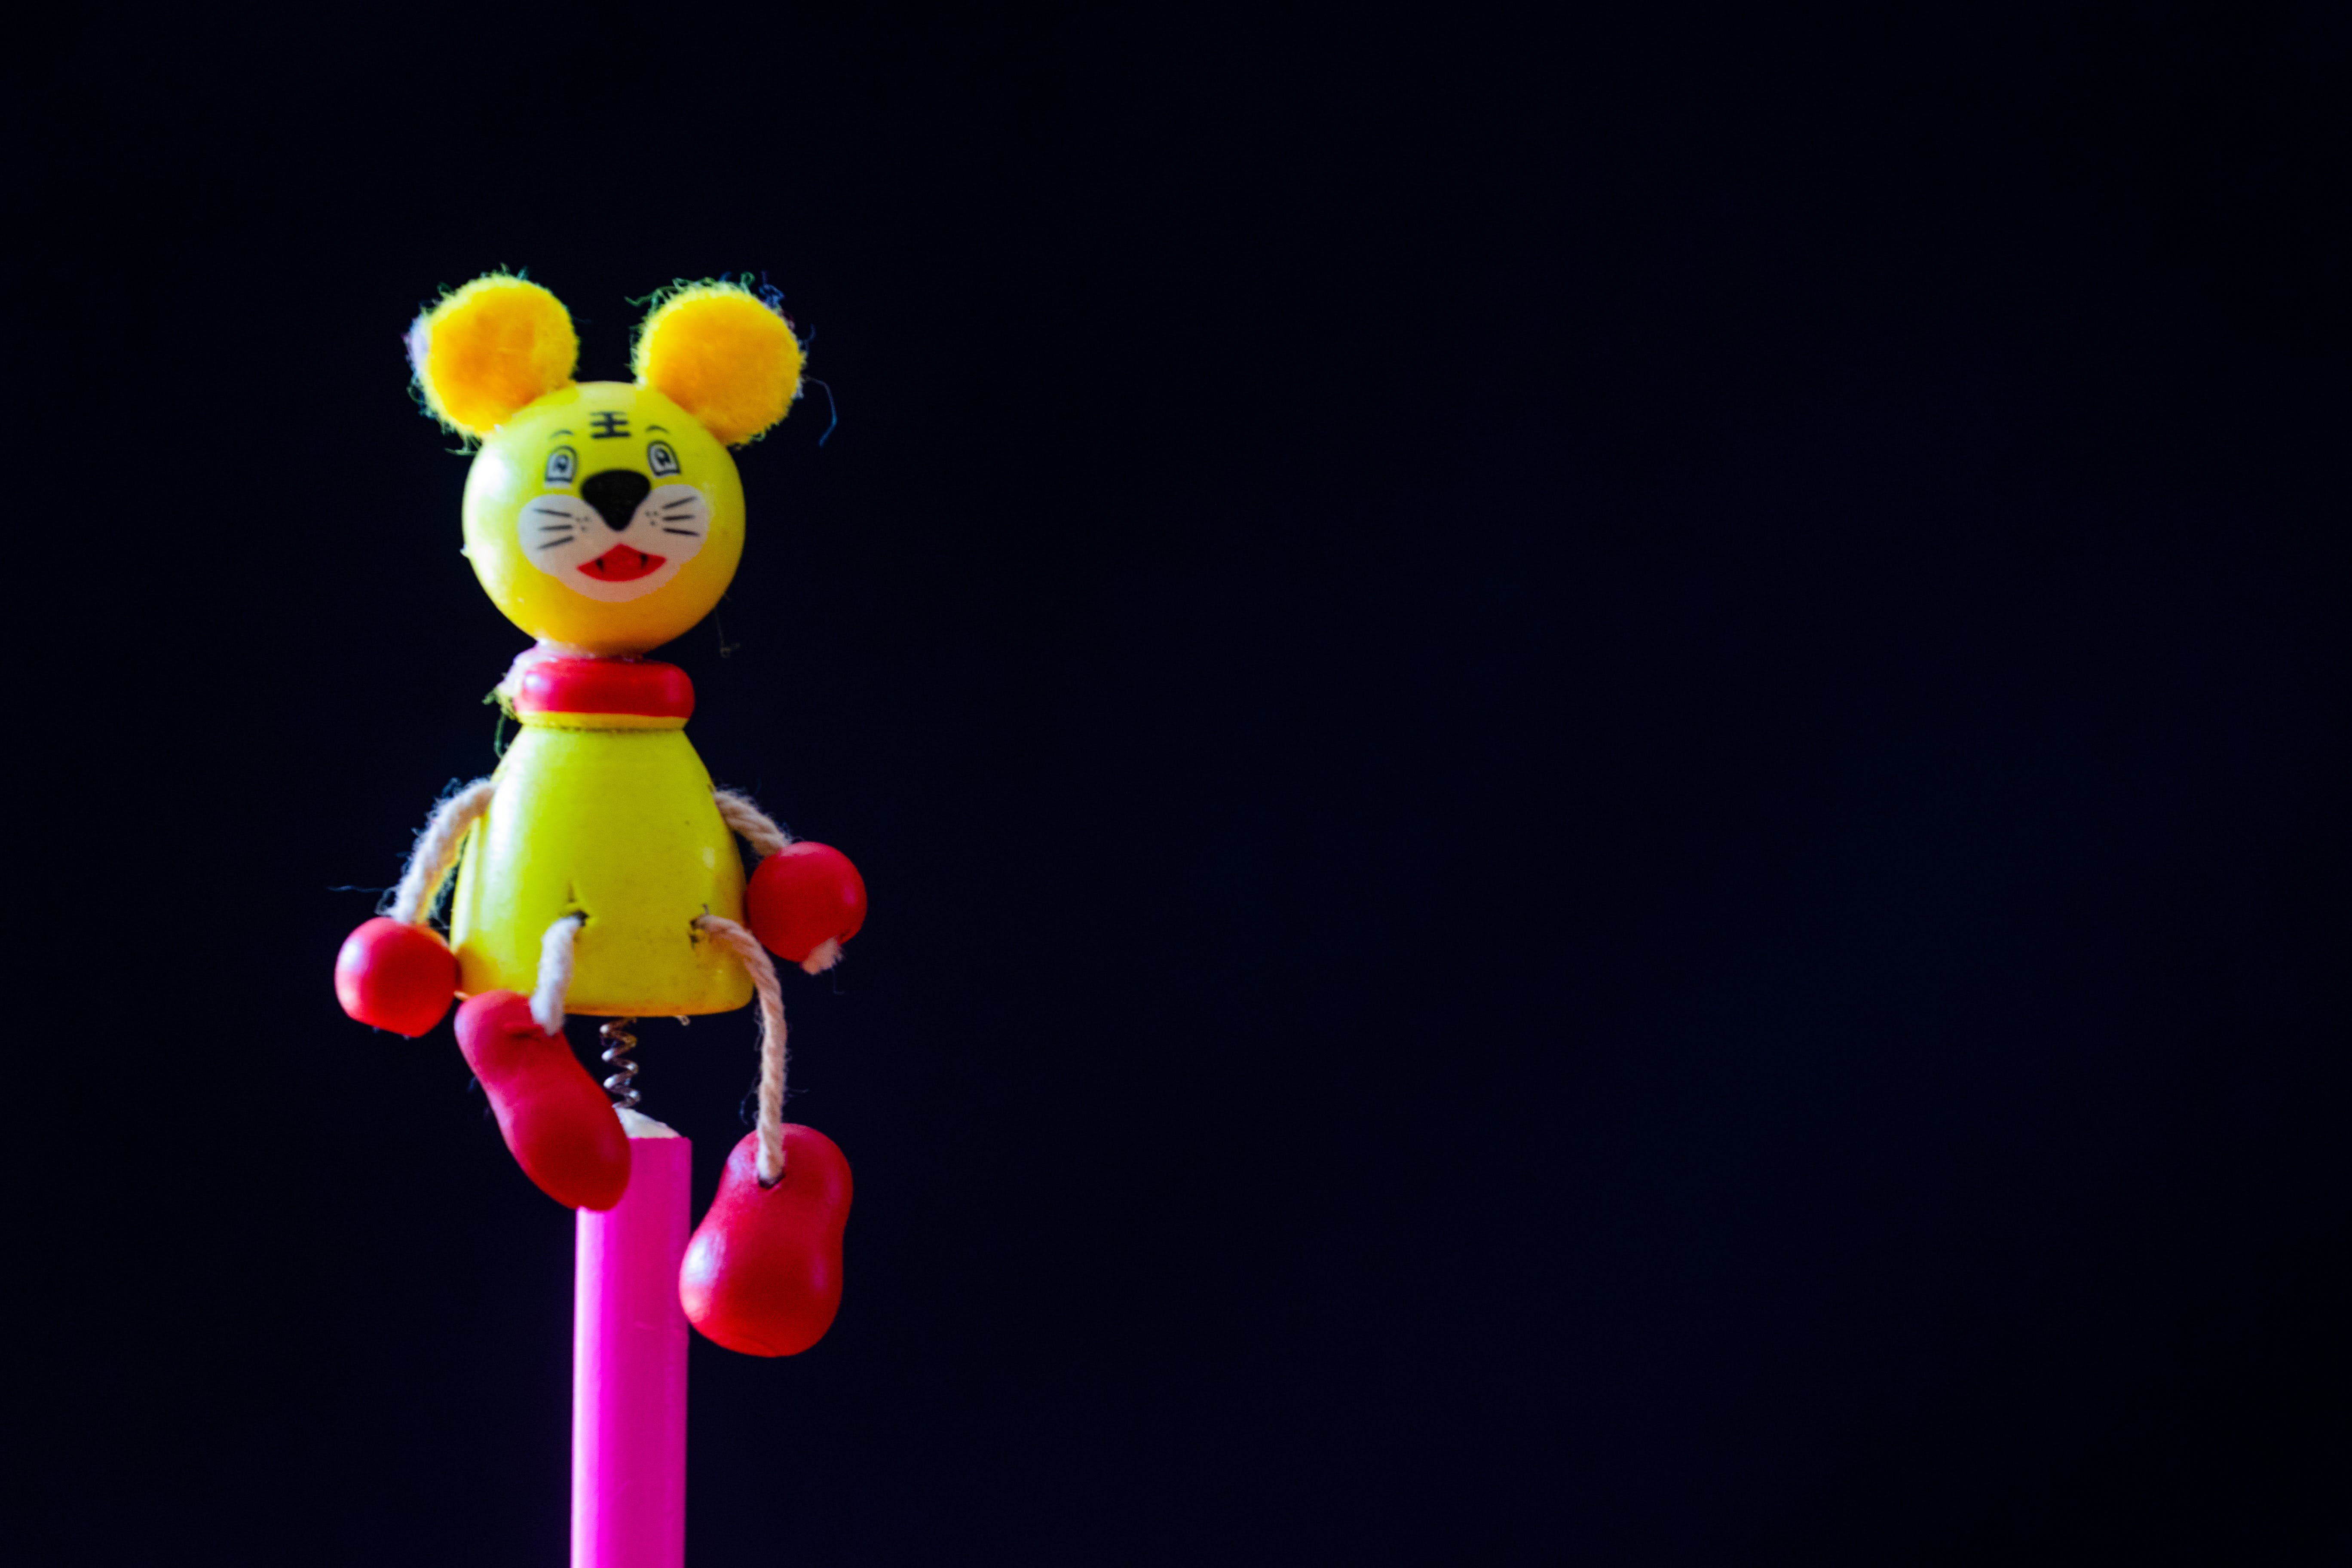 Close-up Photo of Yellow and Red Mouse Character Toy